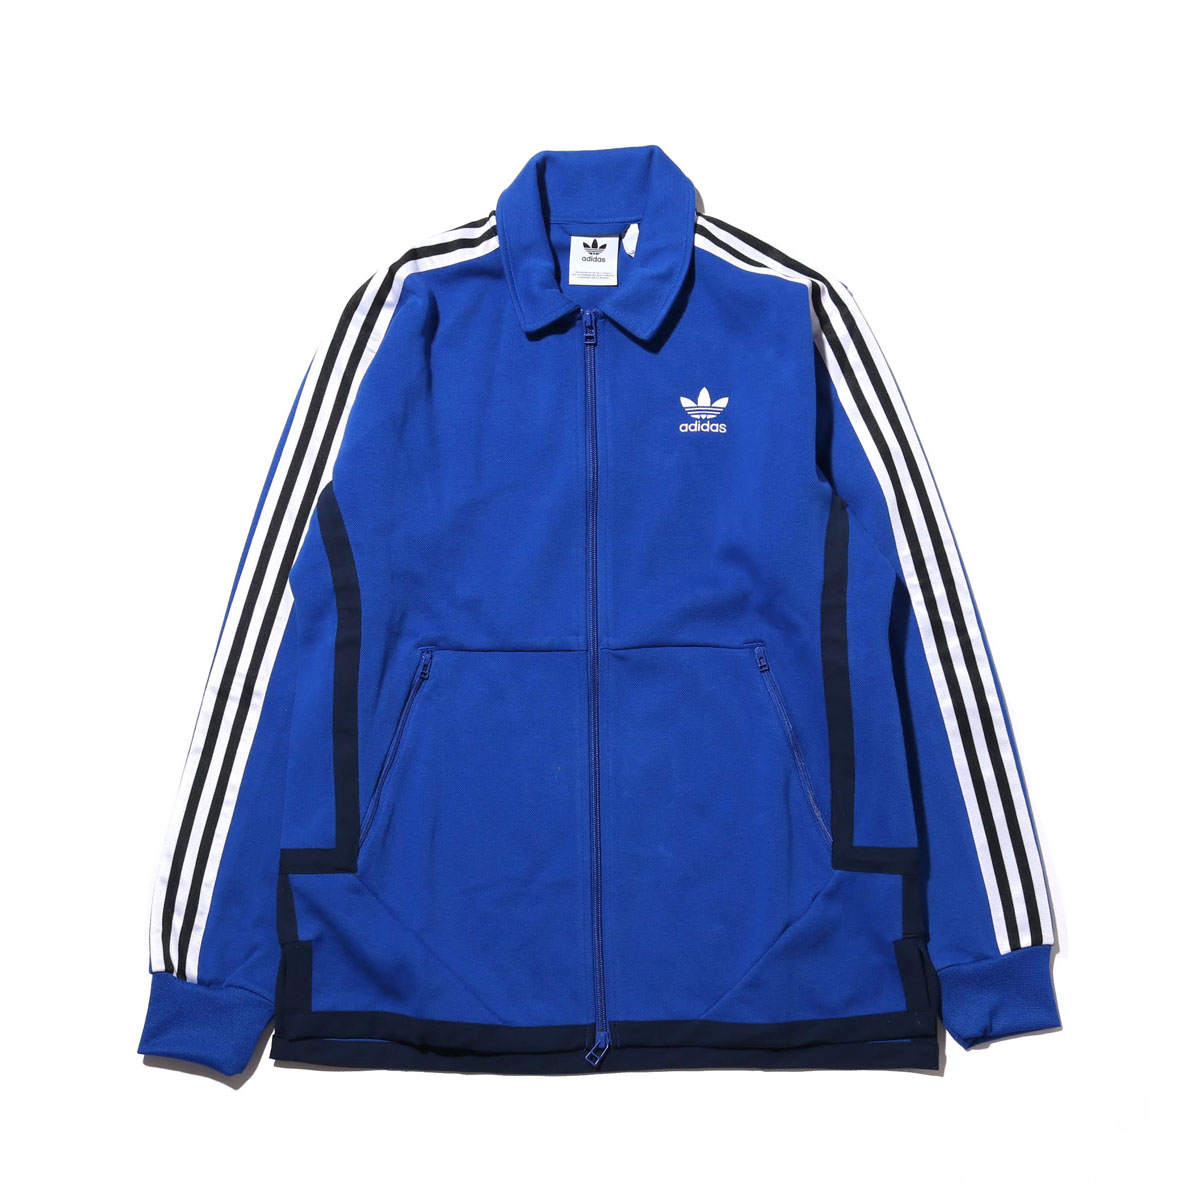 adidas original jacket college blue